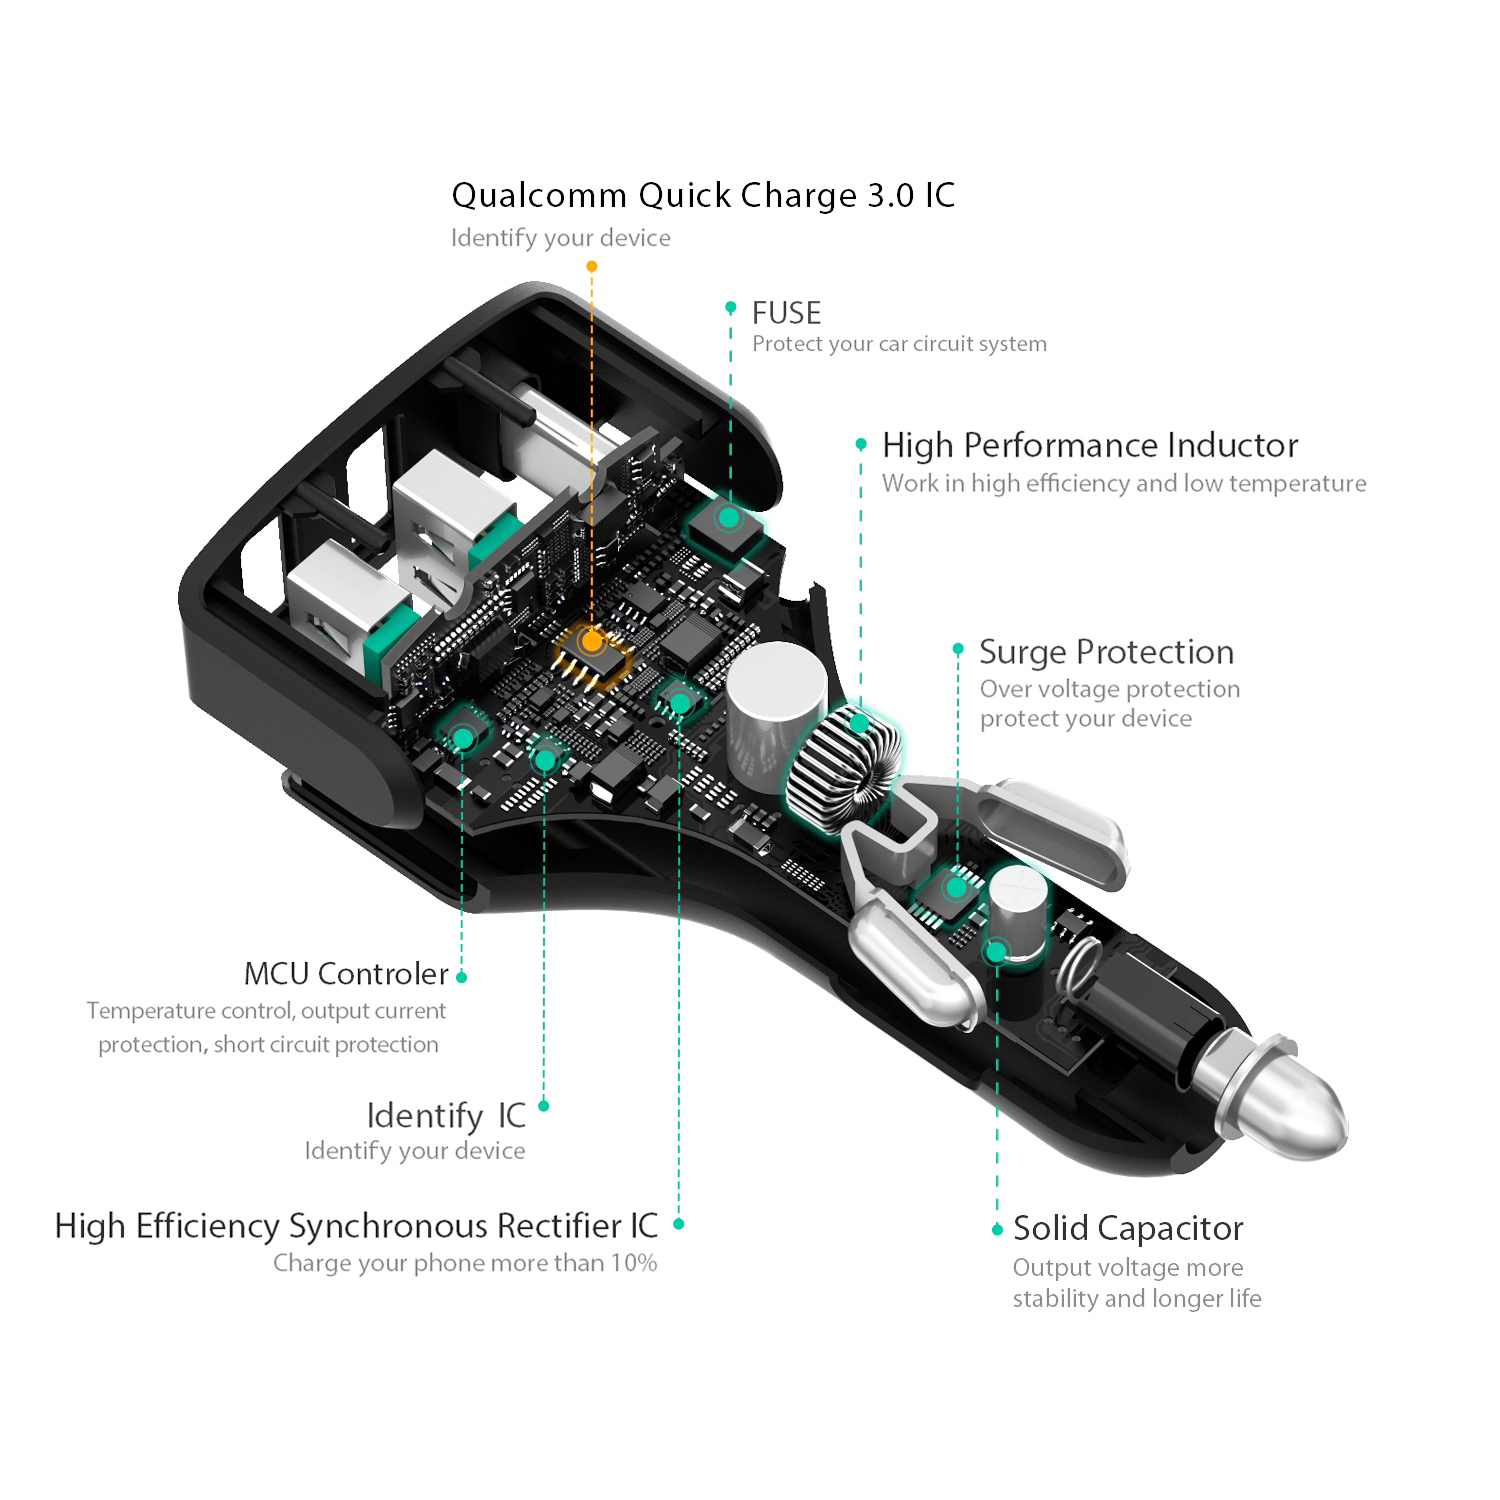 Mini Usb Car Charger Wiring Diagram Trusted Diagrams Miniusb Connector Wire Basic Guide U2022 Otg